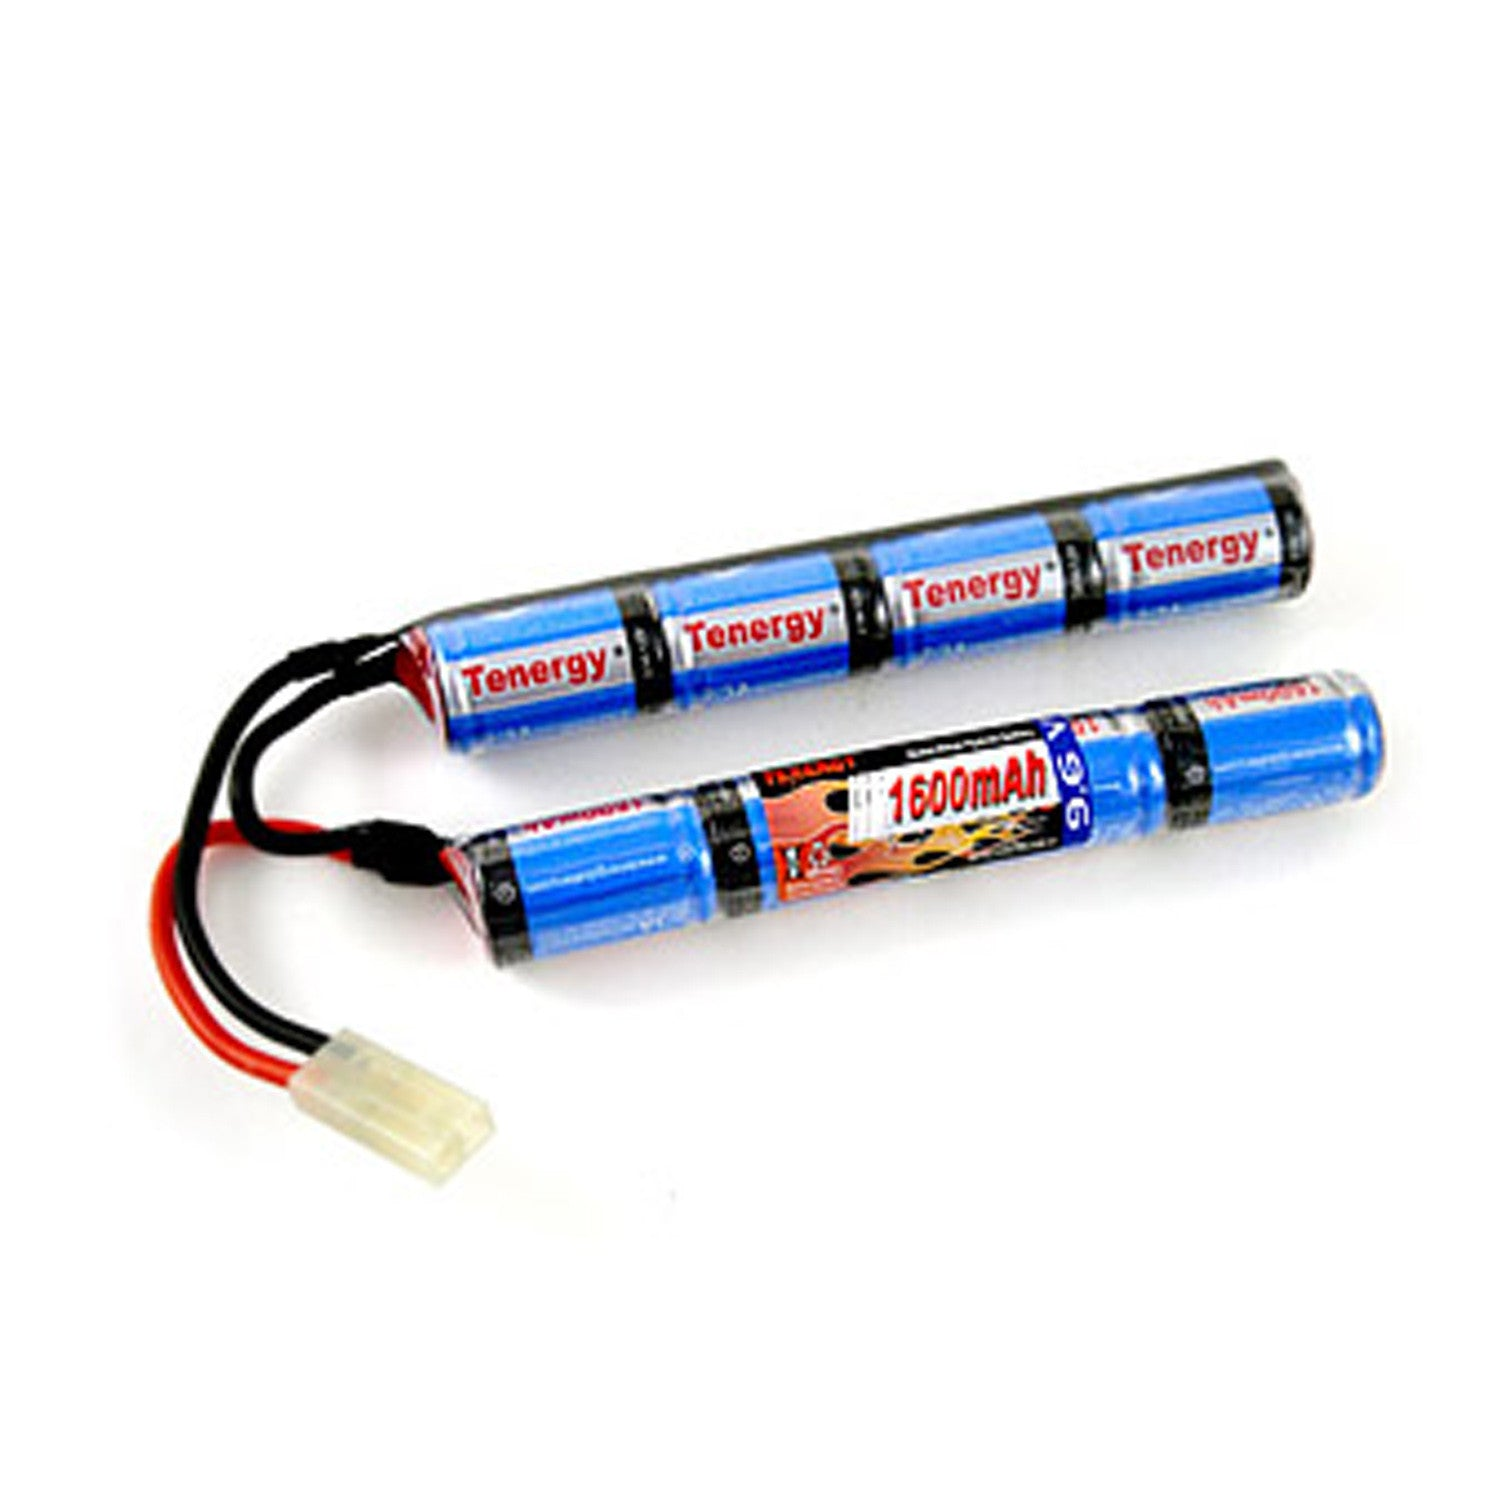 tenergy 9.6 1600 mah Volt Butterfly Battery